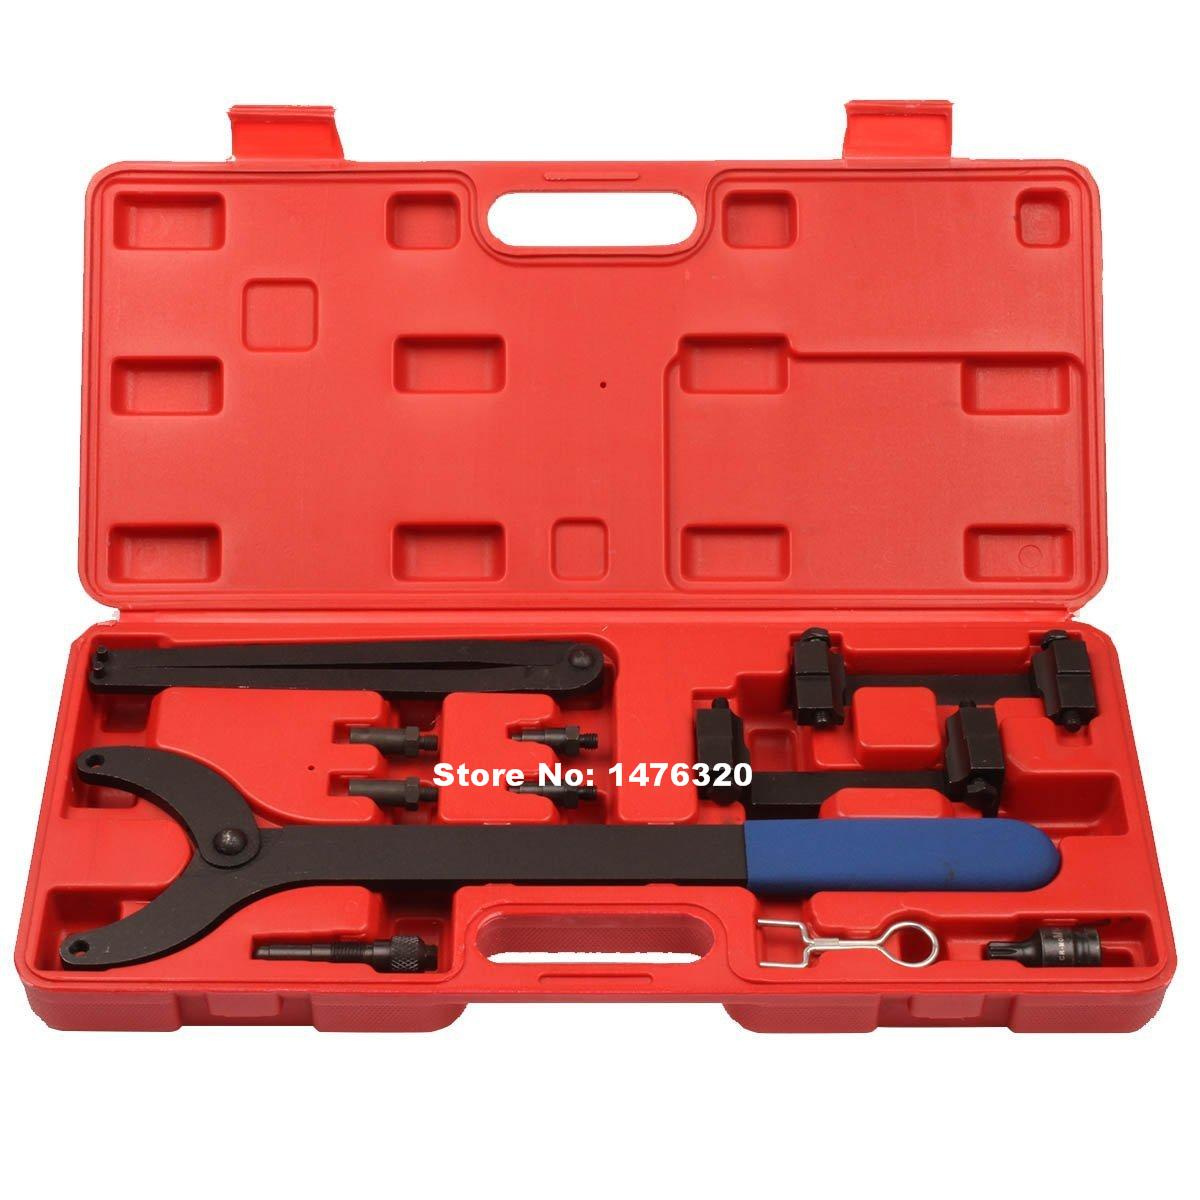 Engine Timing Camshaft Locking Alignment Setting Tool Auto Repair Garage Tools For VW Audi A4 A6 A8 3.2L V6 FSI AT2169 цена